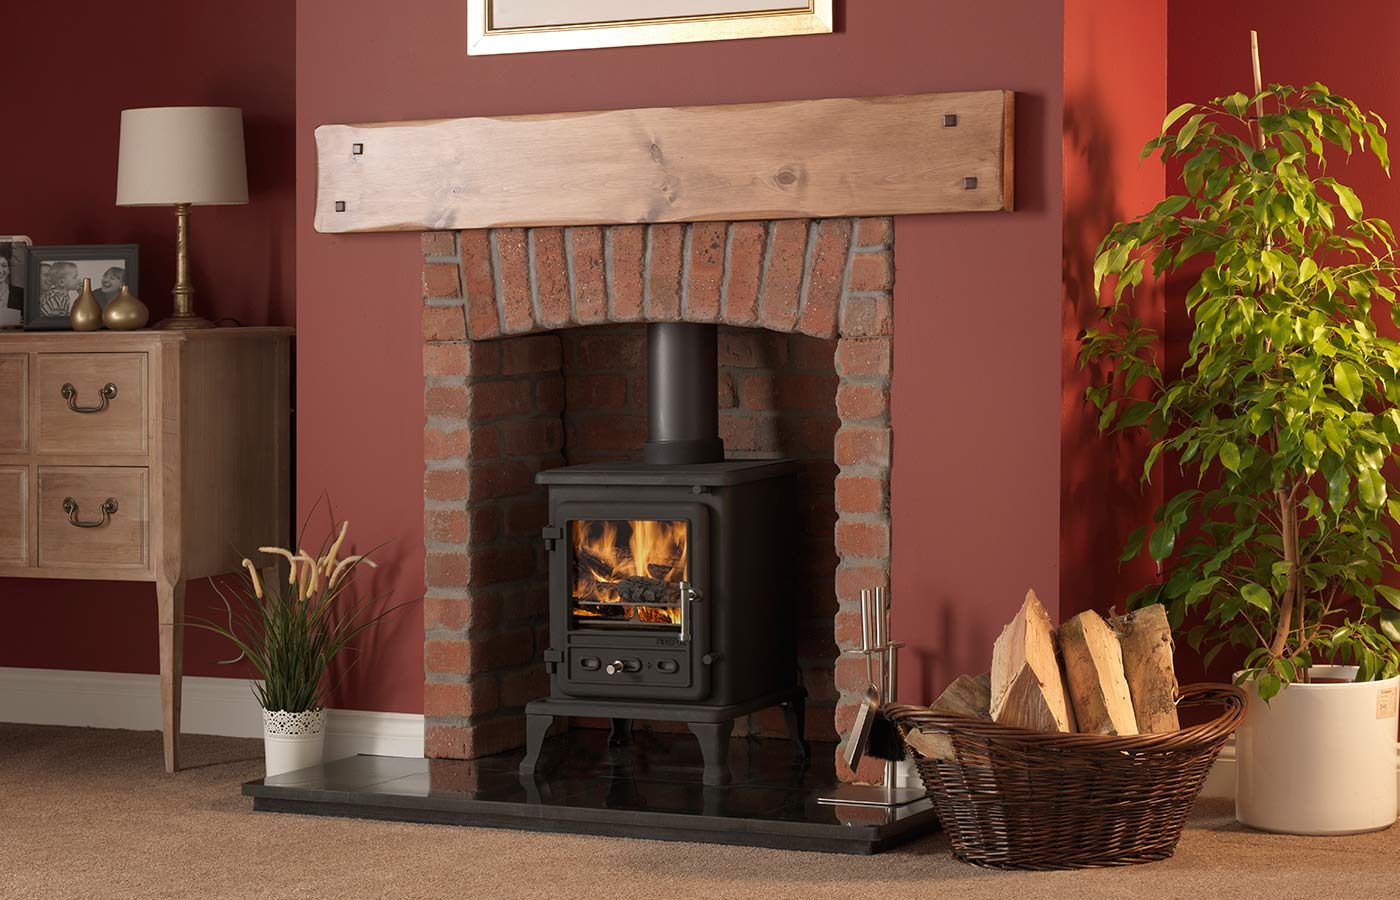 "Firefox 5.1 Multi-Fuel Stove with Rustic Brick Chamber with Front Returns and Arch, Slabbed Granite Hearth, Slabbed Granite Back Hearth, 54"" Croft Pine Beam"